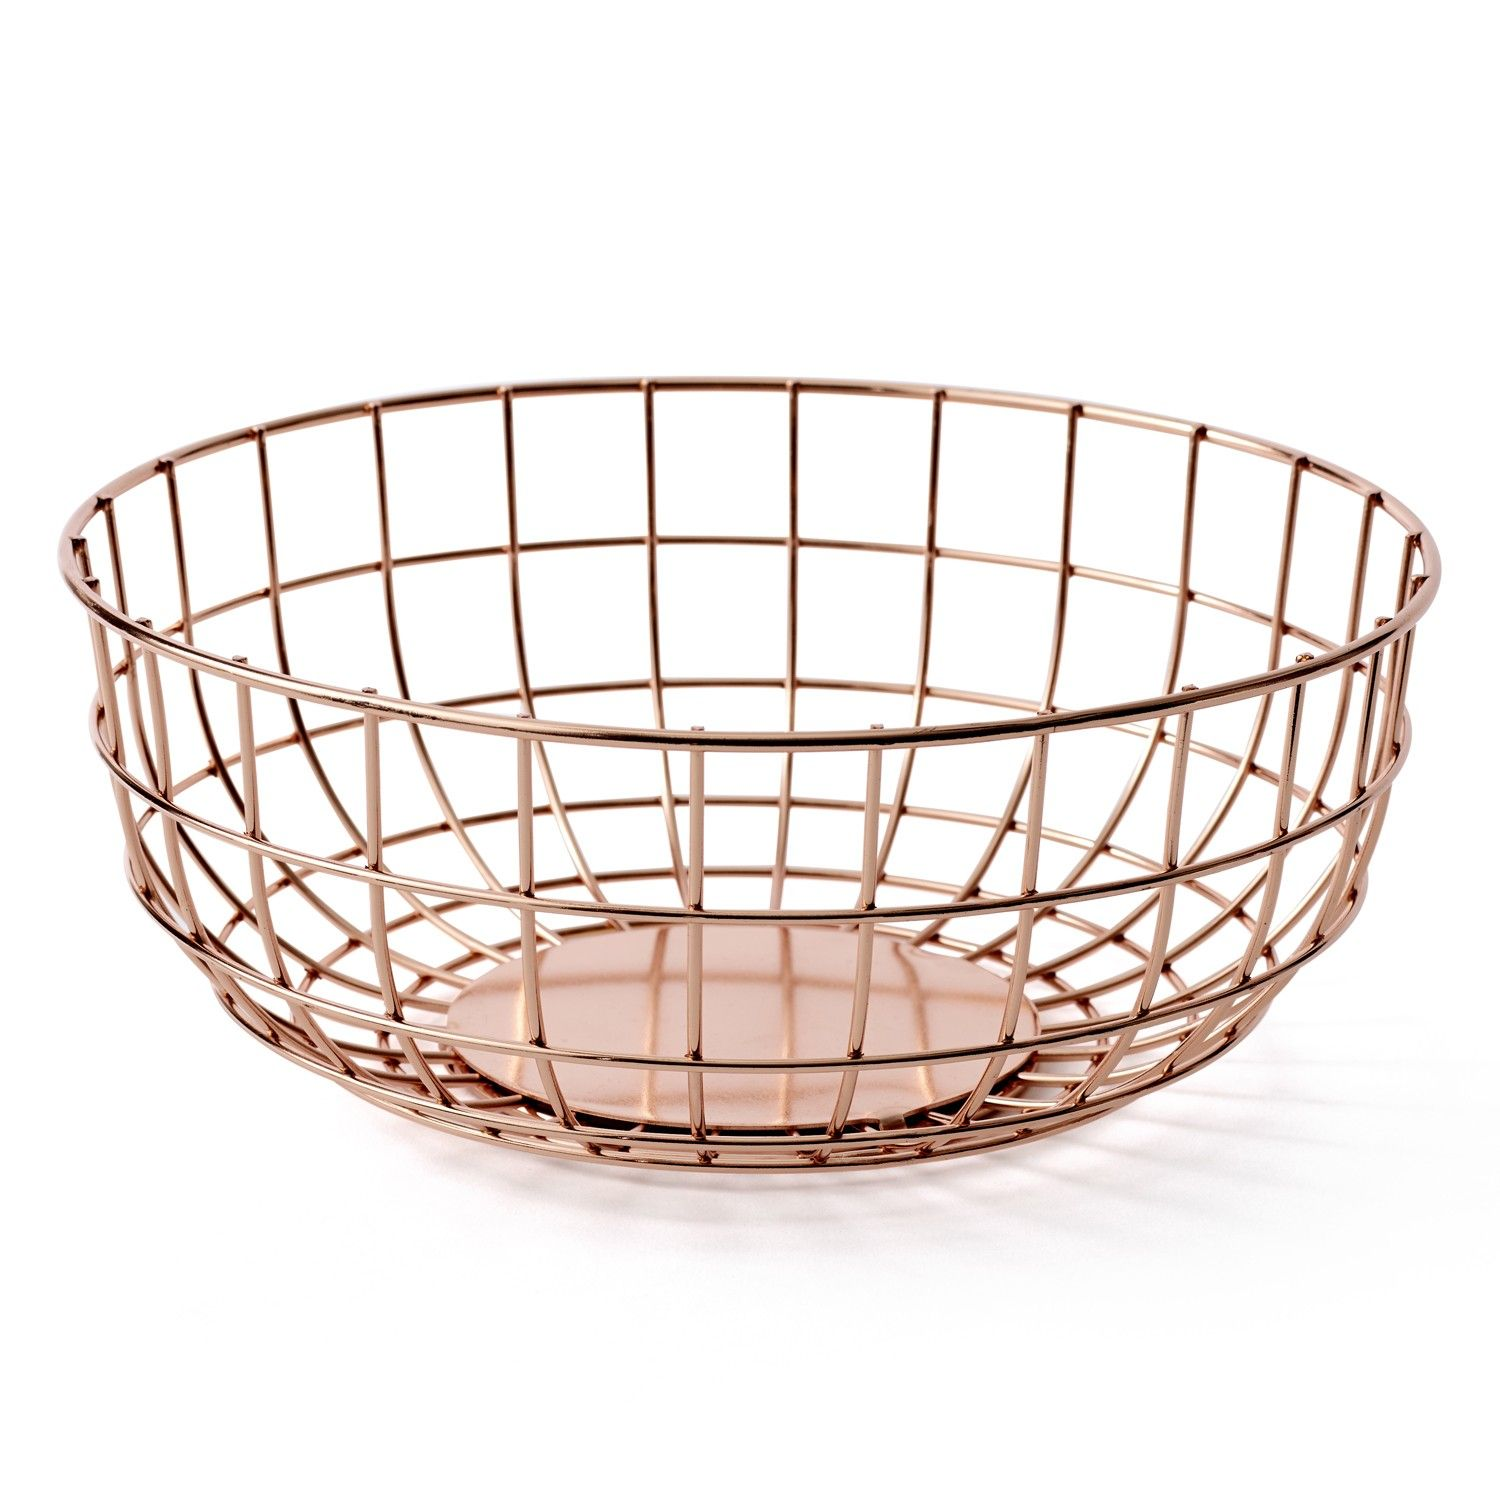 Designer Fruit Basket Stylishly Corral Wayward Objects With The Norm Wire Bowl